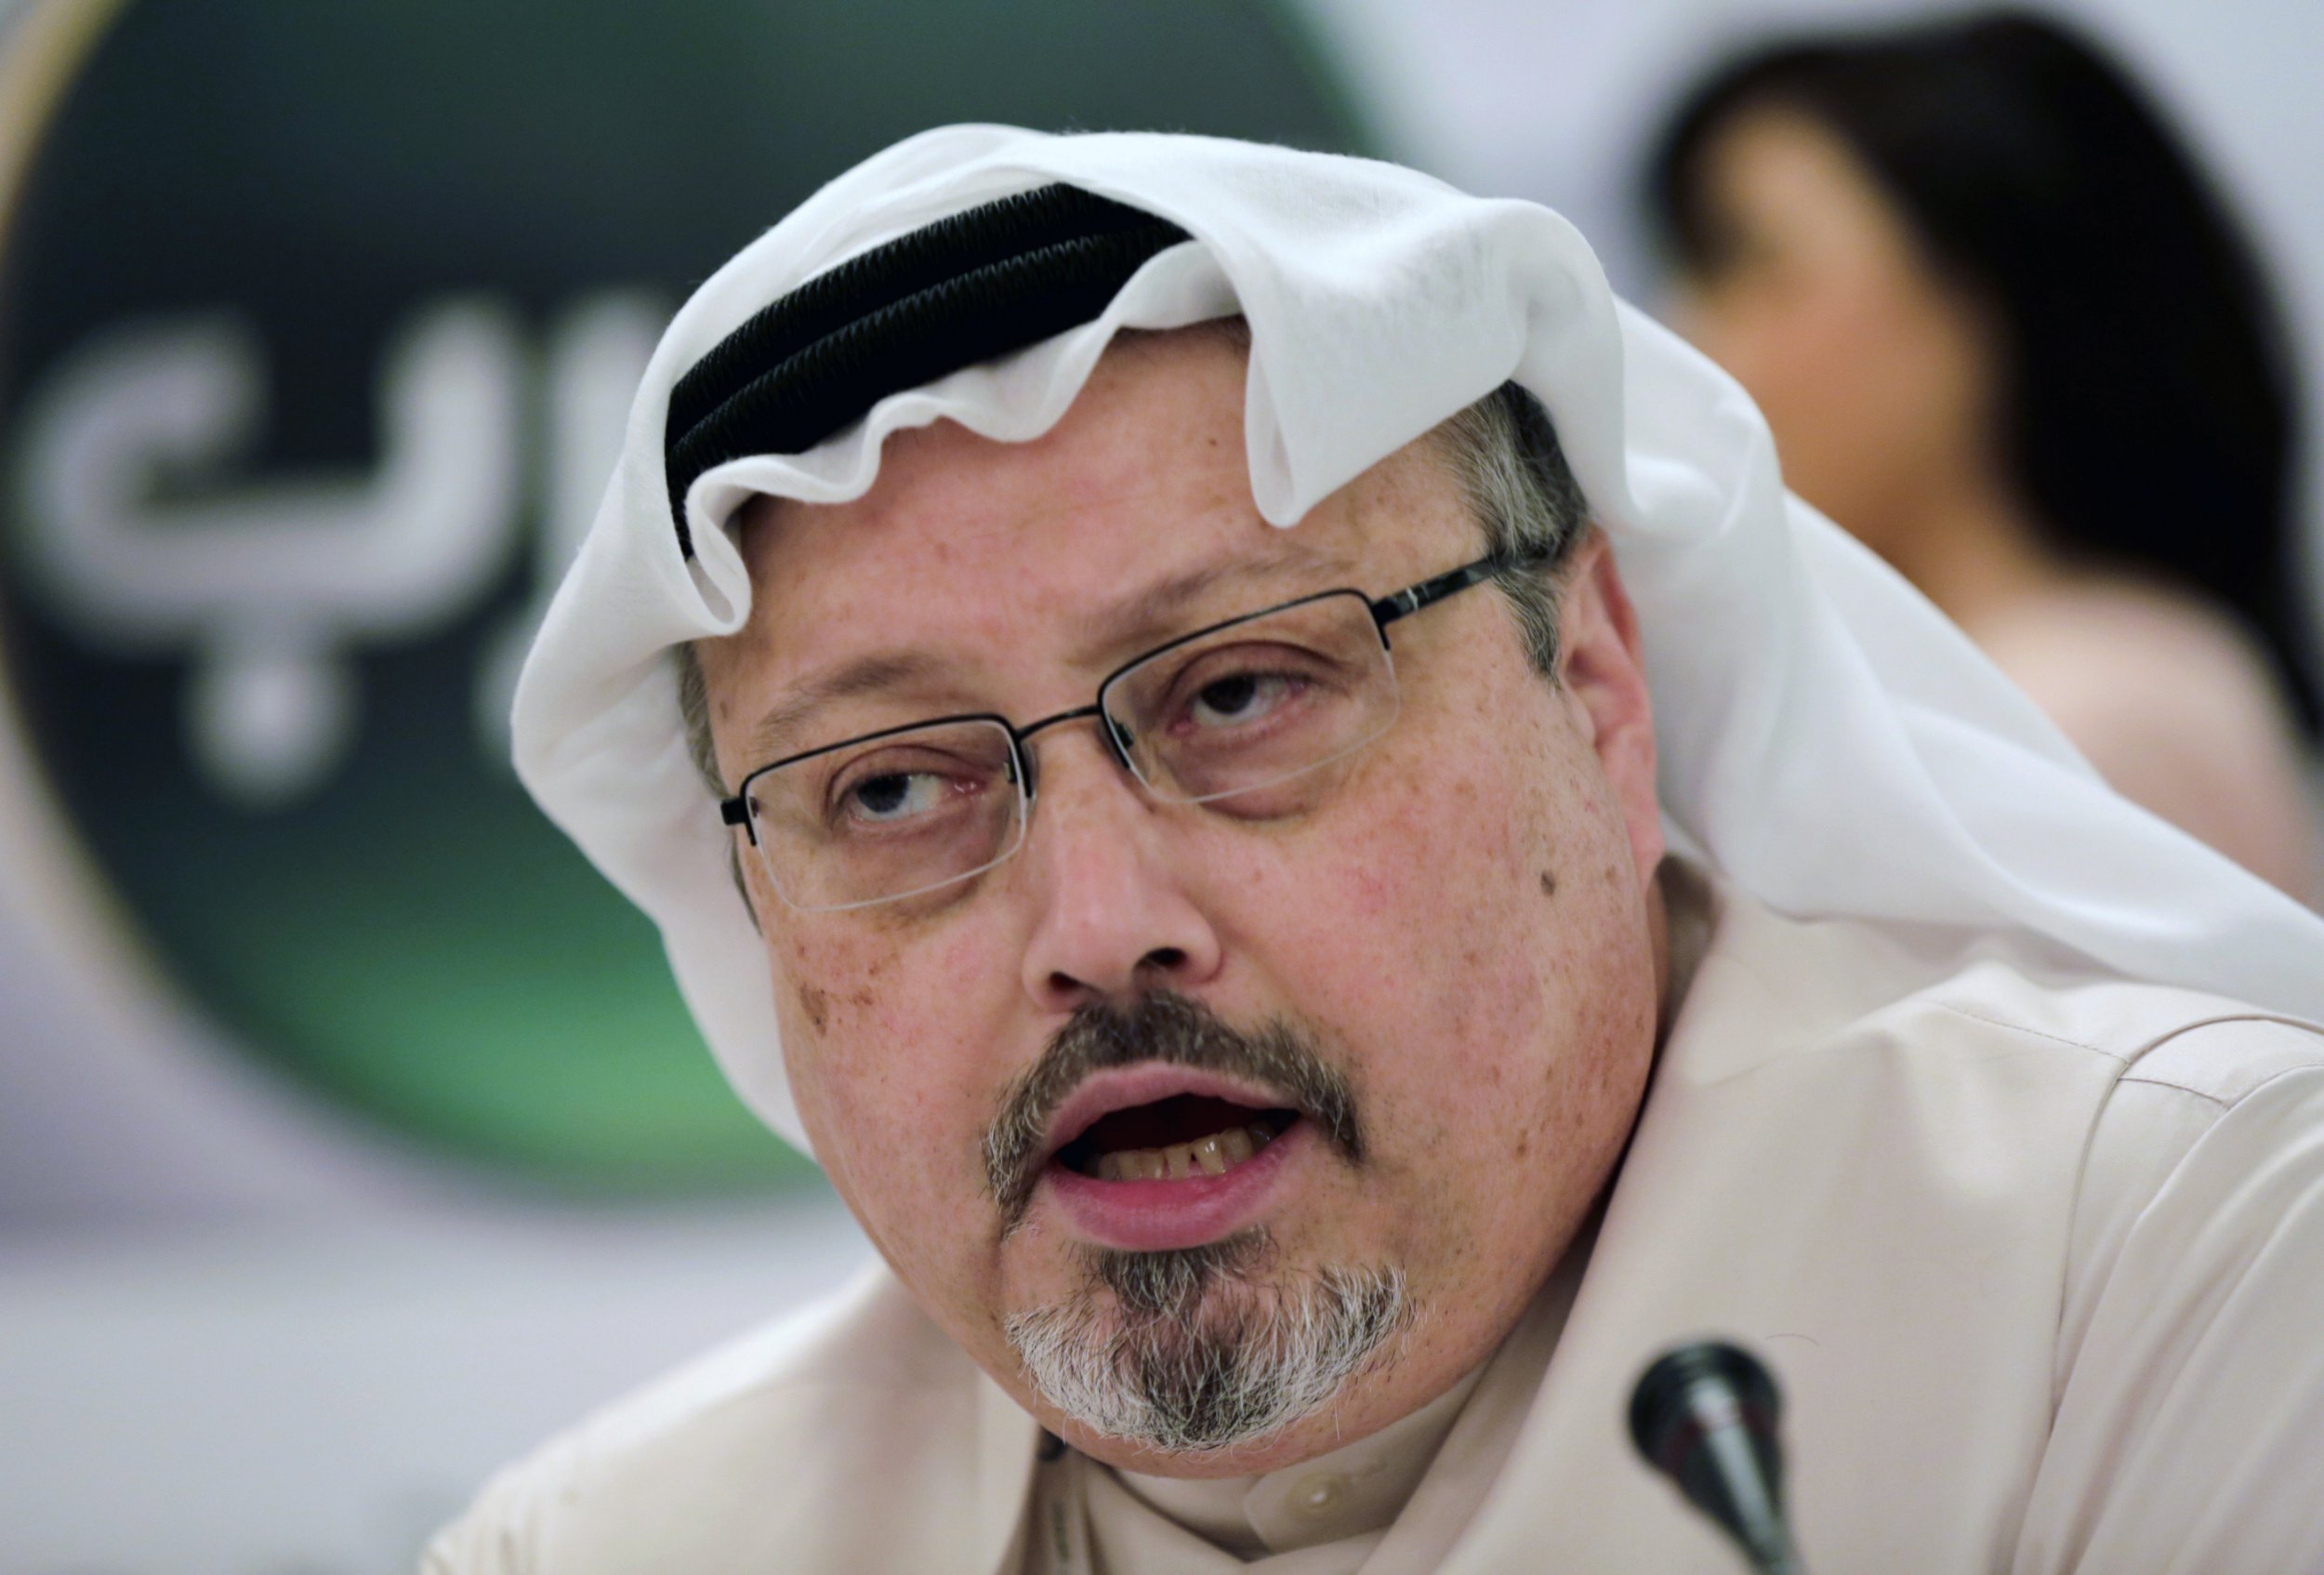 Britain demands investigation into missing Saudi journalist after assassination claims